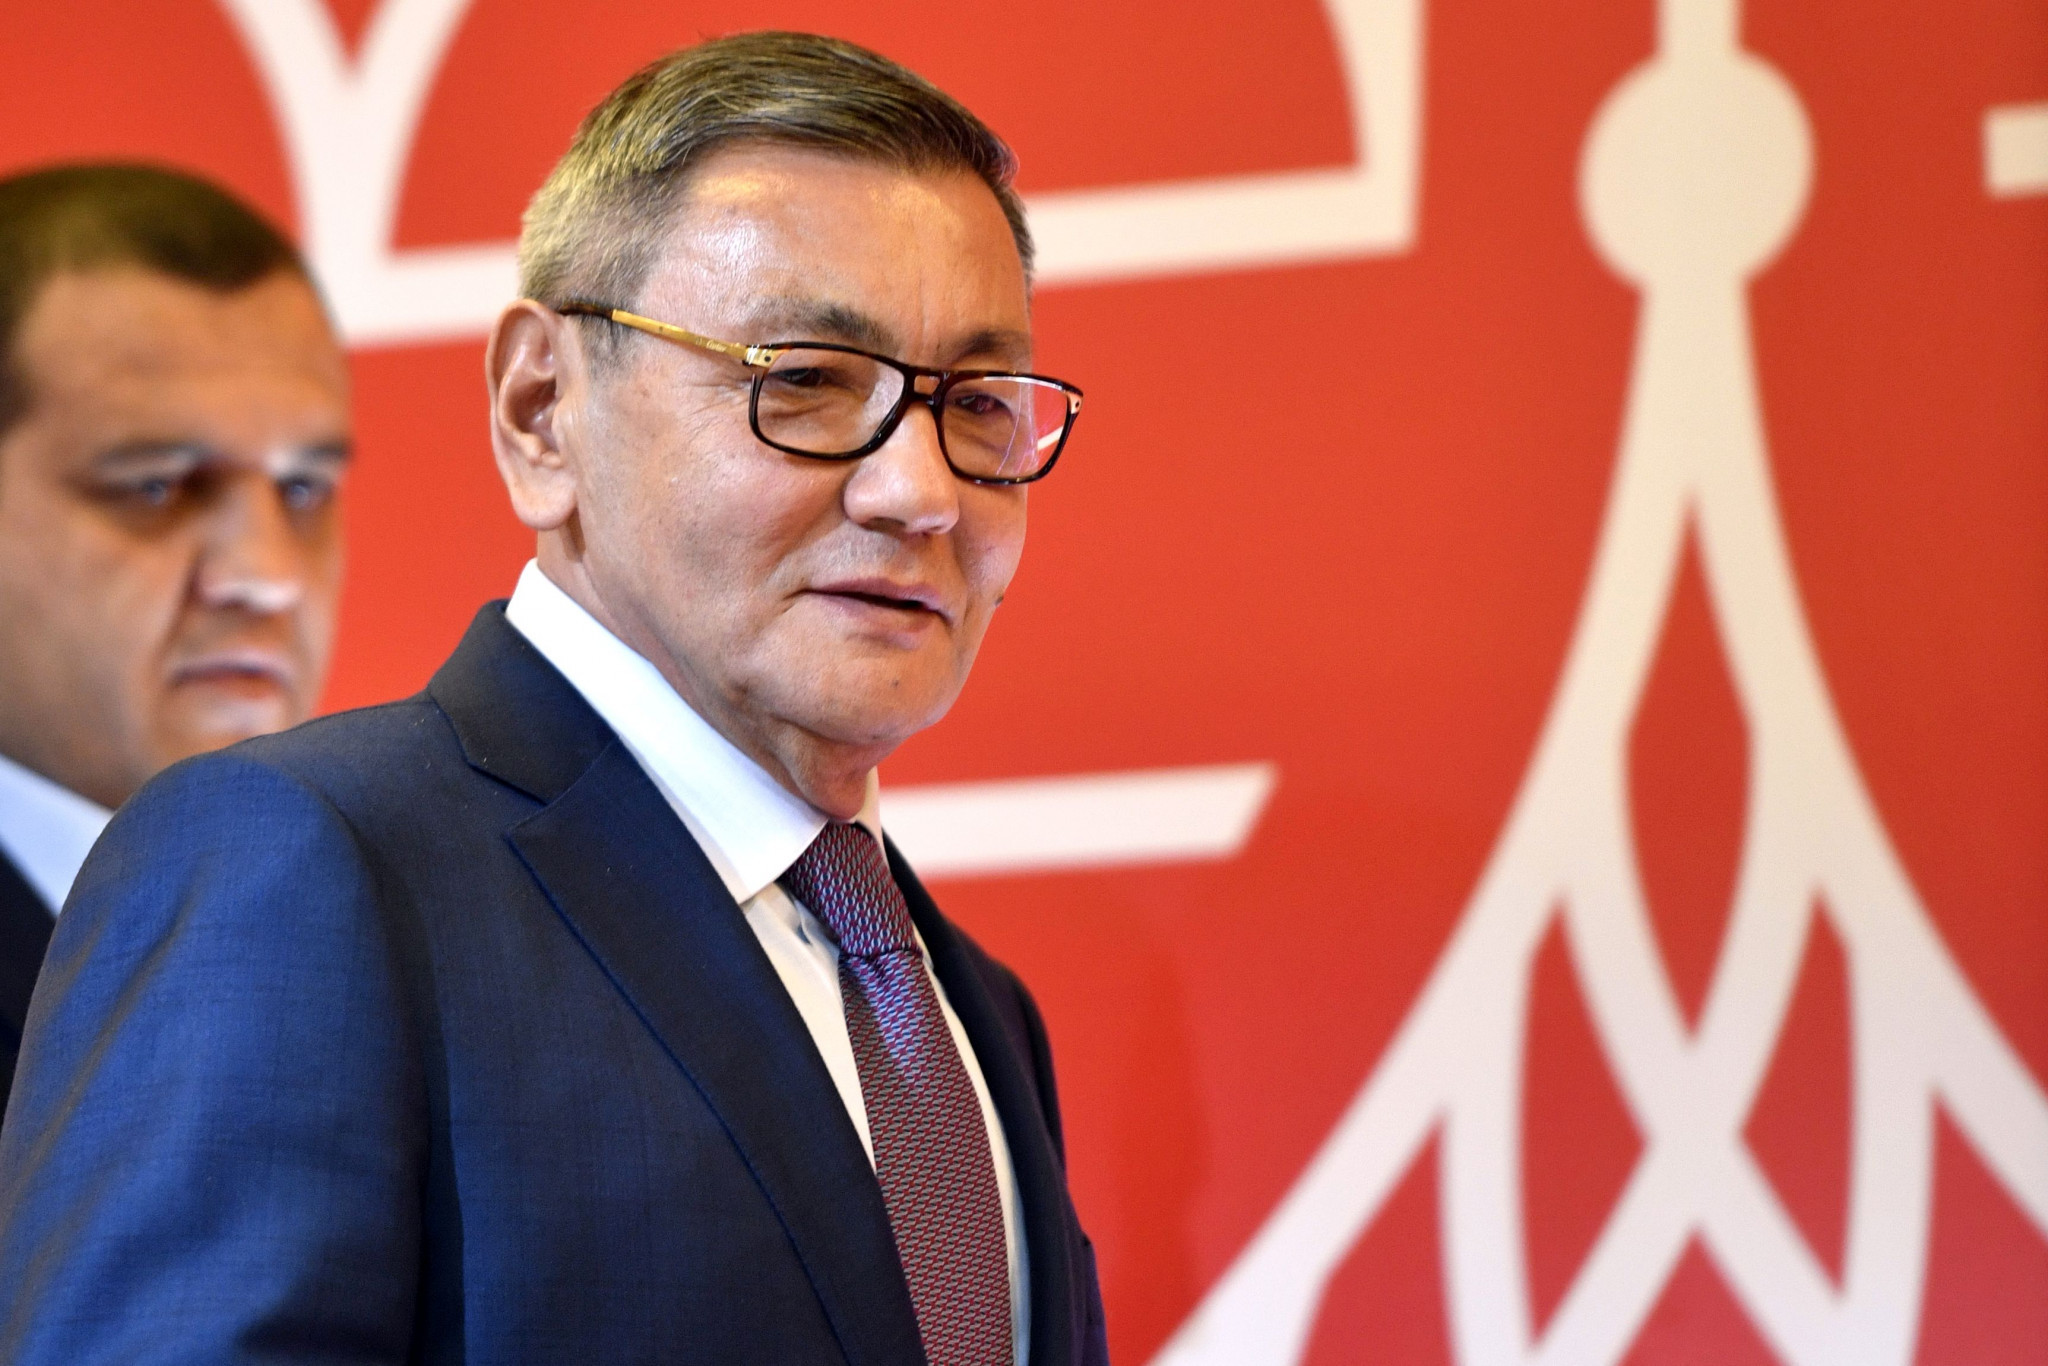 Gafur Rakhimov is to stand aside as AIBA President ©Getty Images